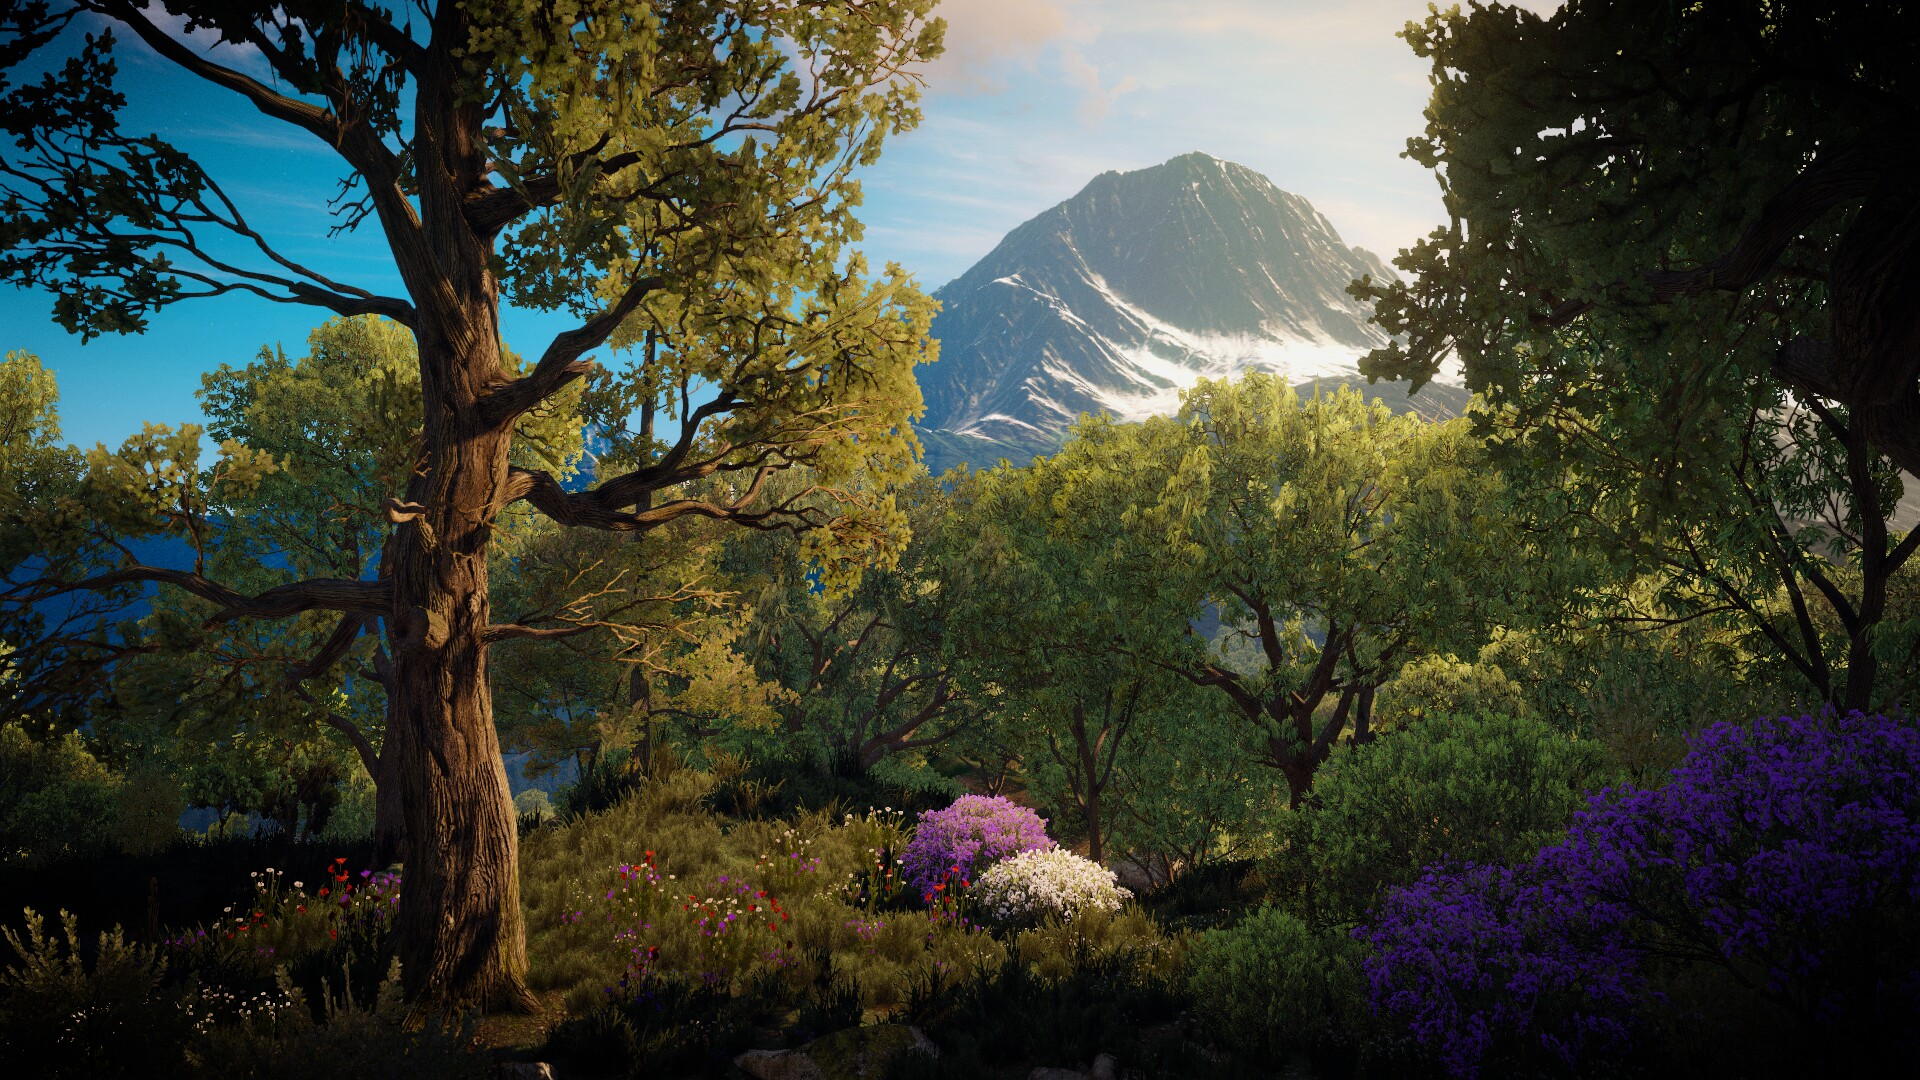 =_= - Witcher 3: Wild Hunt, the